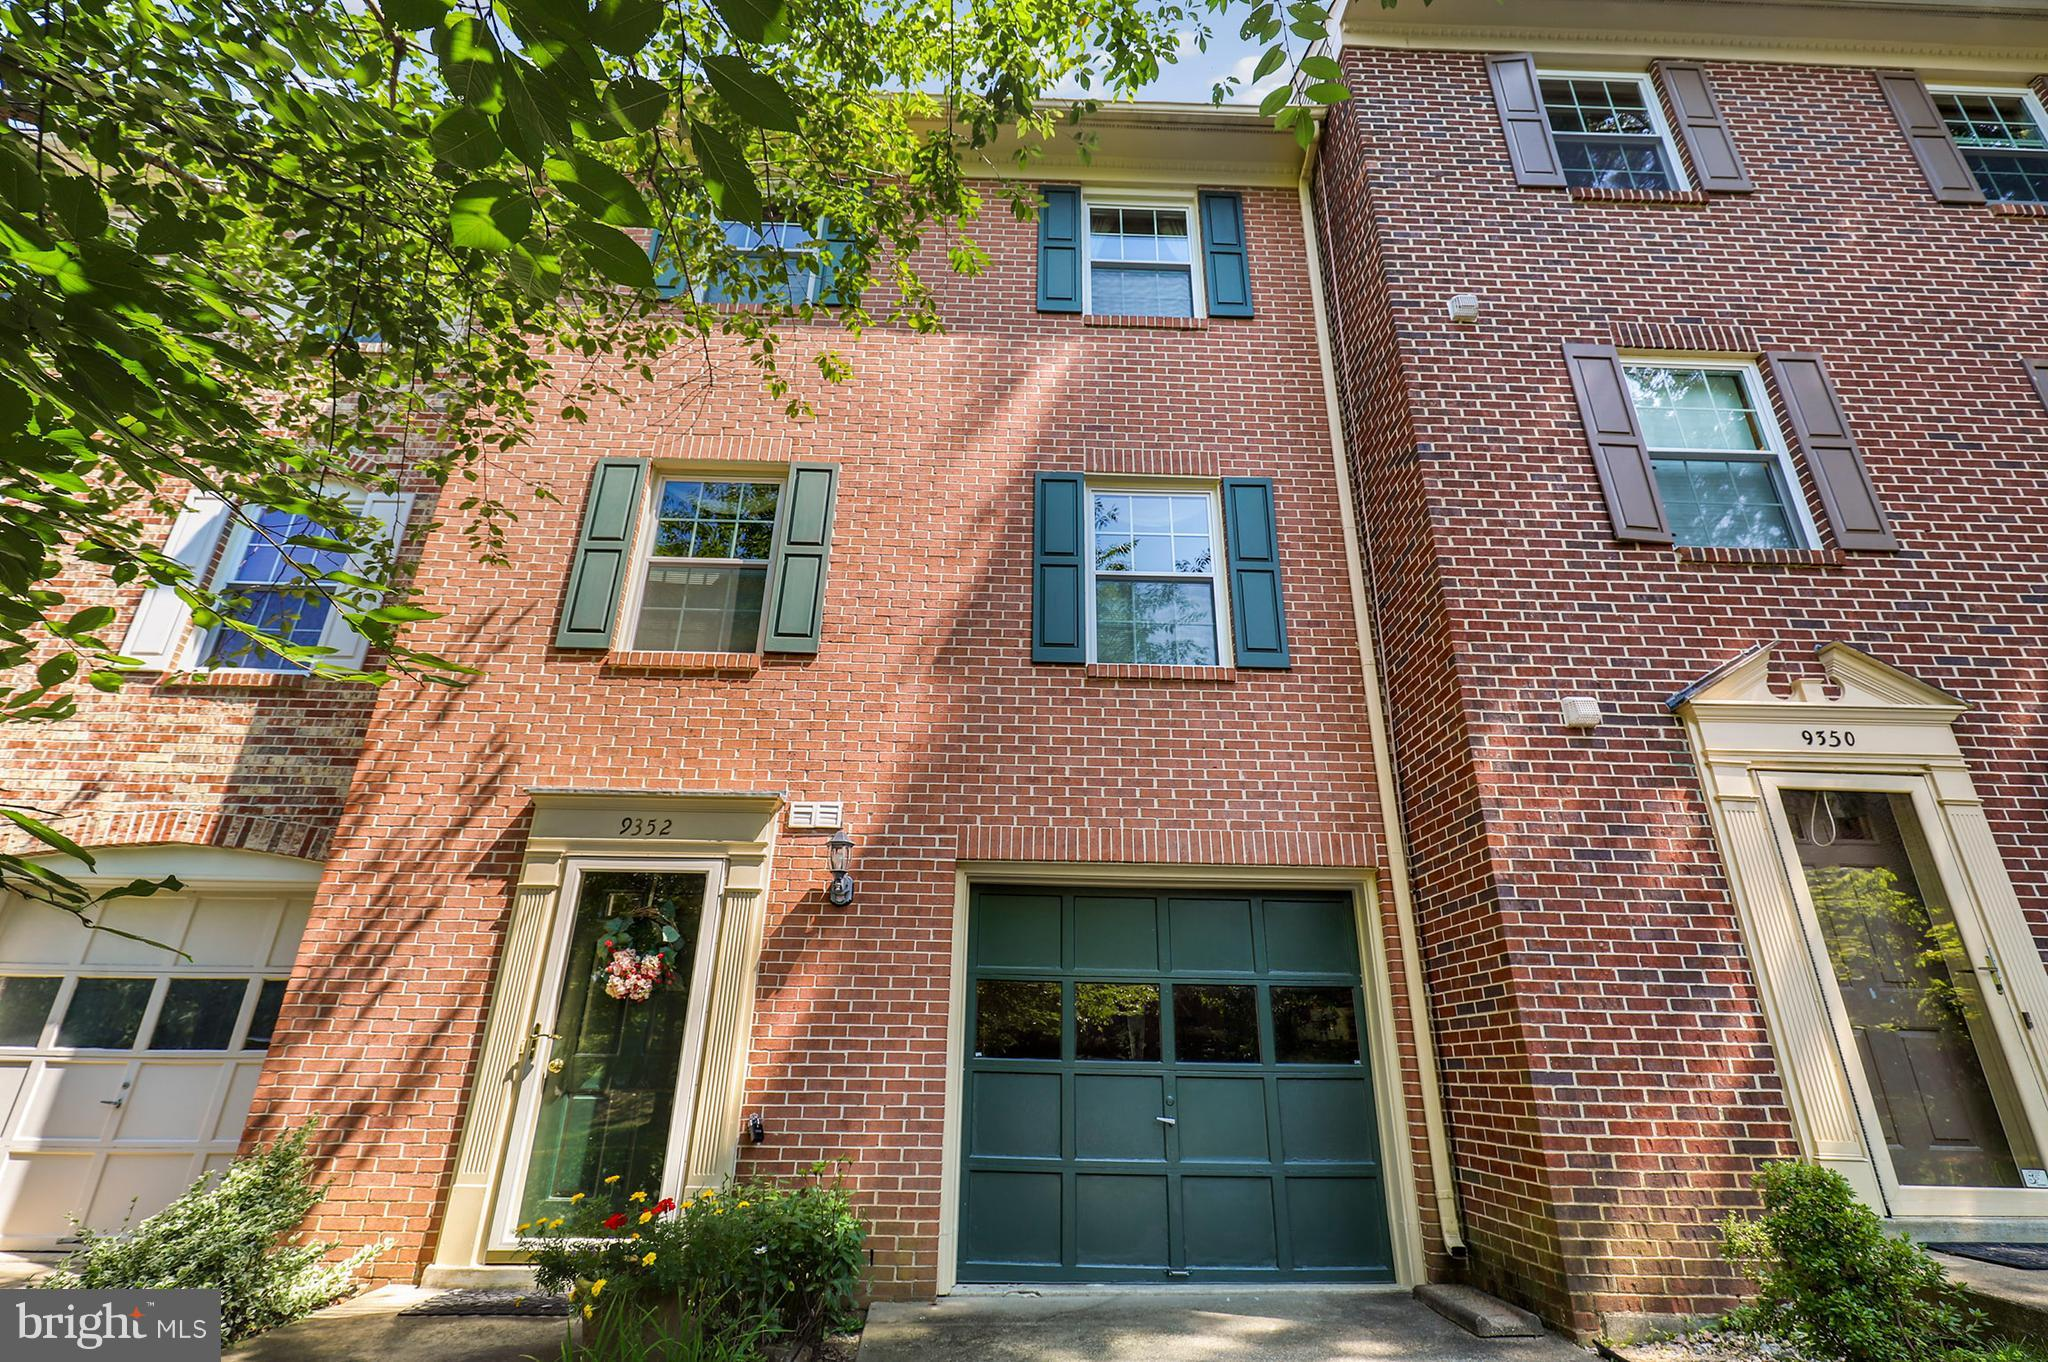 LOCATION backs to Park. Immaculate 3BD, 2.5BA Wooden Glen TH! Main FLR includes an LRG FAM RM w/ FPL, office & fenced-in BKYD. On the 2nd FLR, you have a LRG LR, SEP DR, & an upgraded KITC w/ ceramic tiling that opens to an LRG deck. 3rd FLR FEATs 3 BDs including an MB w/ en-suite BA & 2 walk-in closets. Highlights are new windows, BA fixture upgrades, & HDWD FLRS throughout. Close to transit!